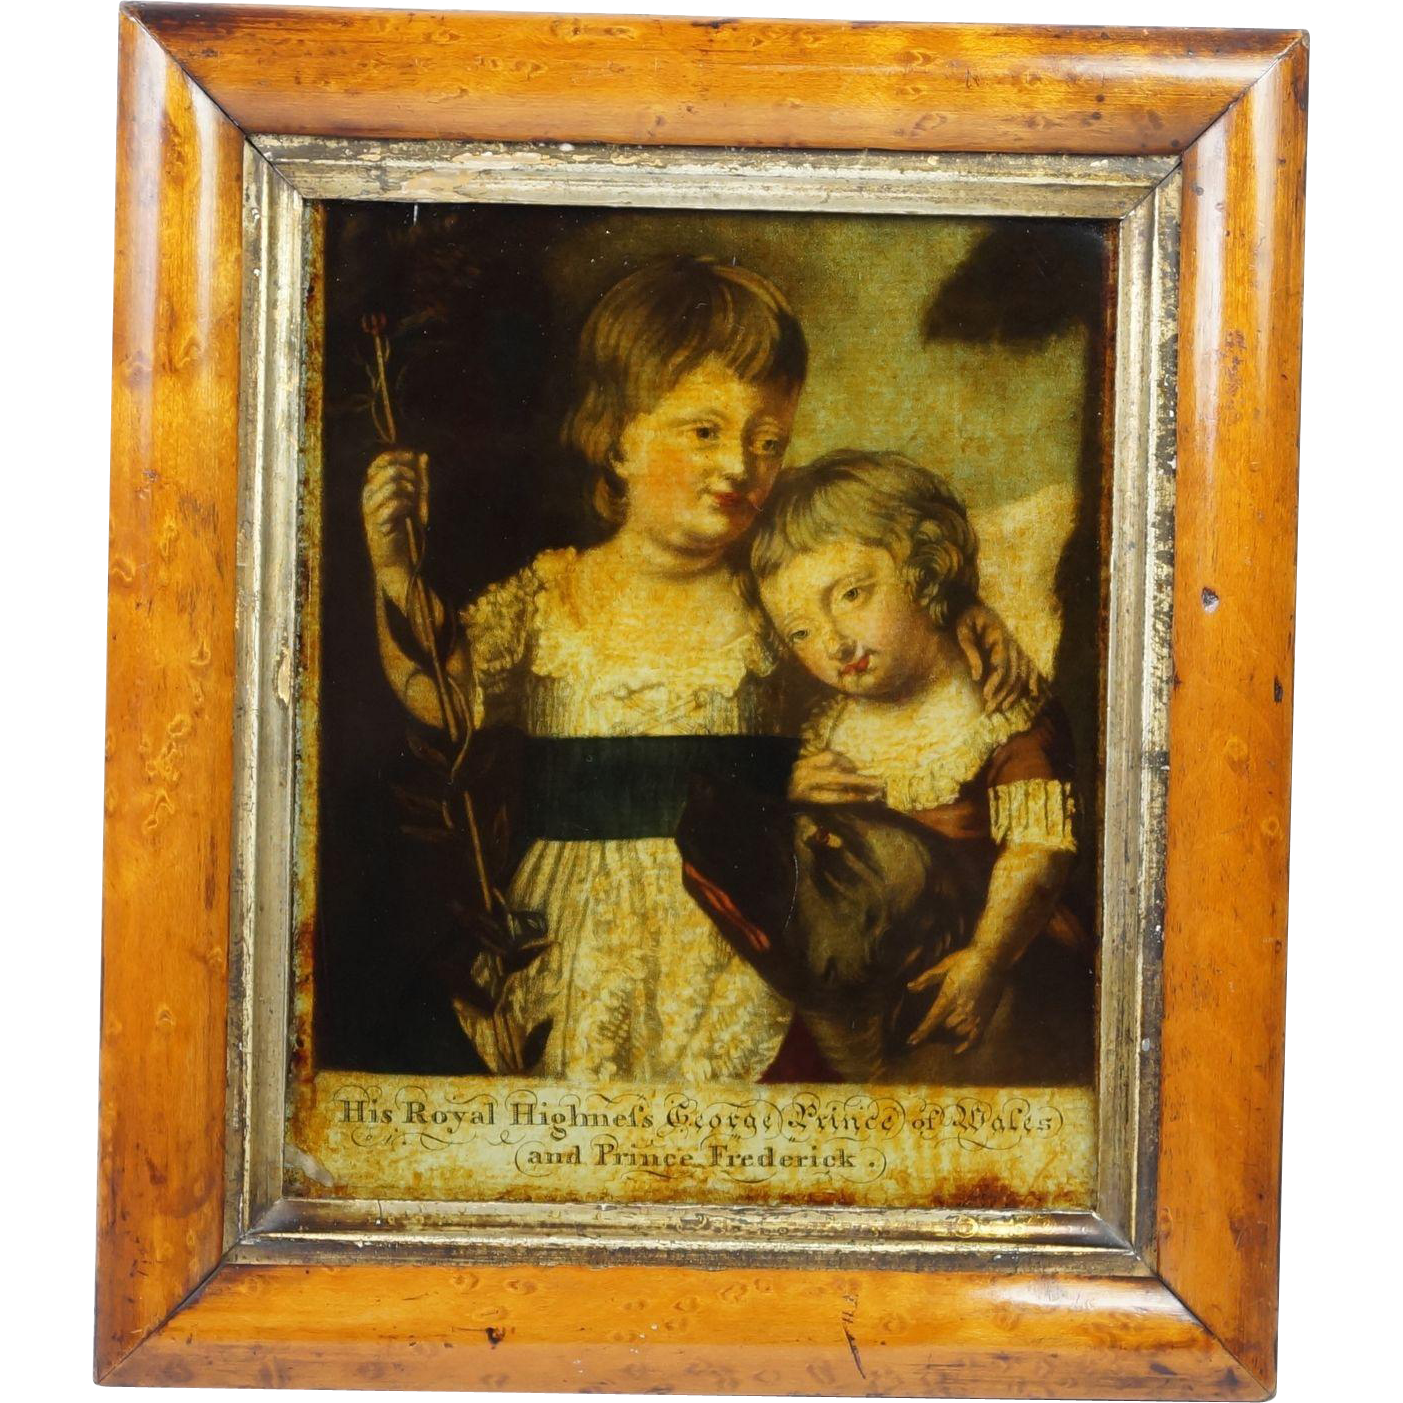 Antique 18th Century Reverse Print On Glass George Prince of Wales and Prince Frederick Circa 1780